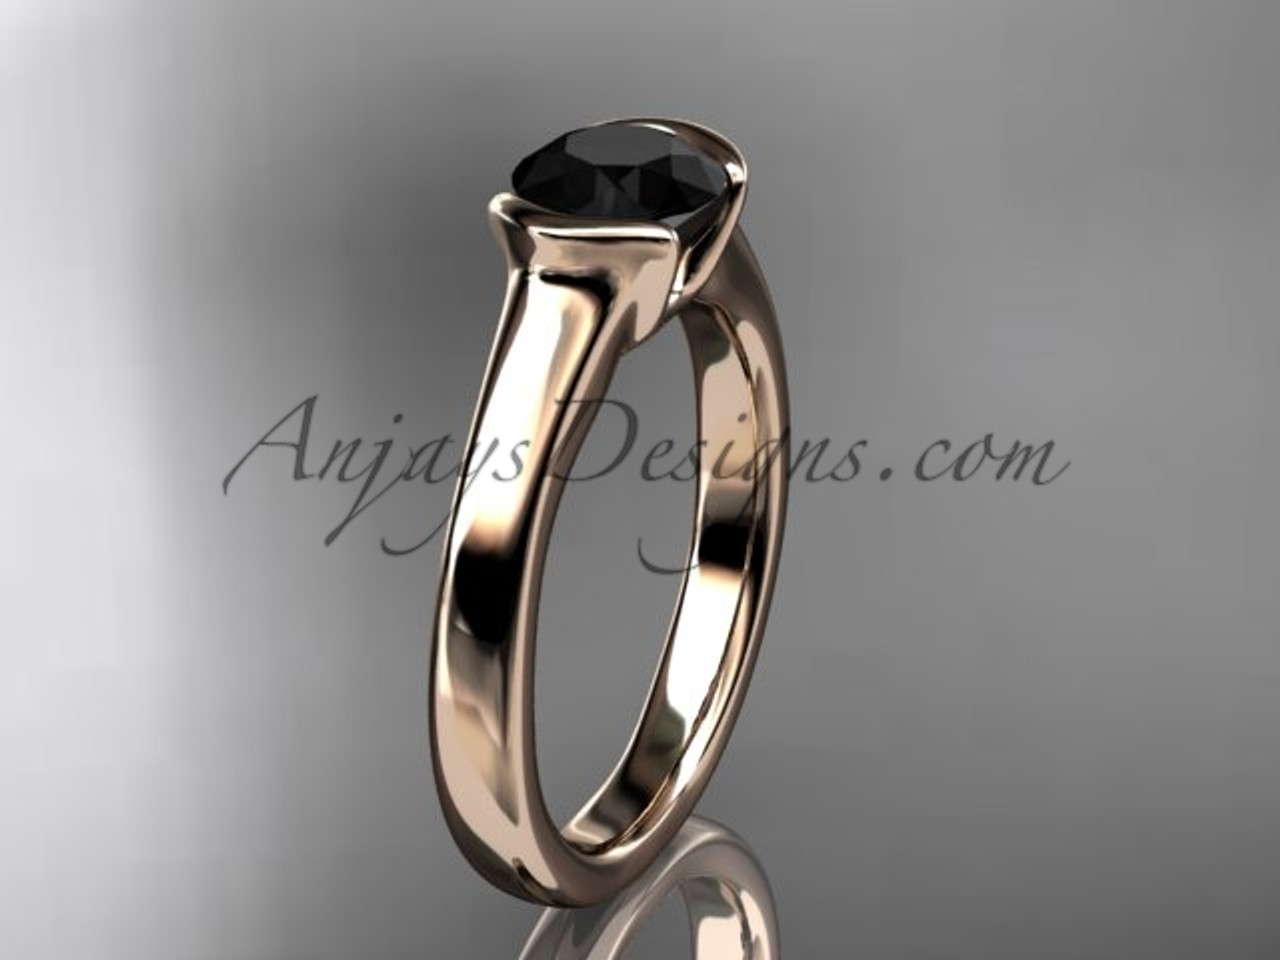 This is an image of Affordable antique engagement rings 47kt Rose Gold Beautiful Black Diamond Wedding Ring VD47